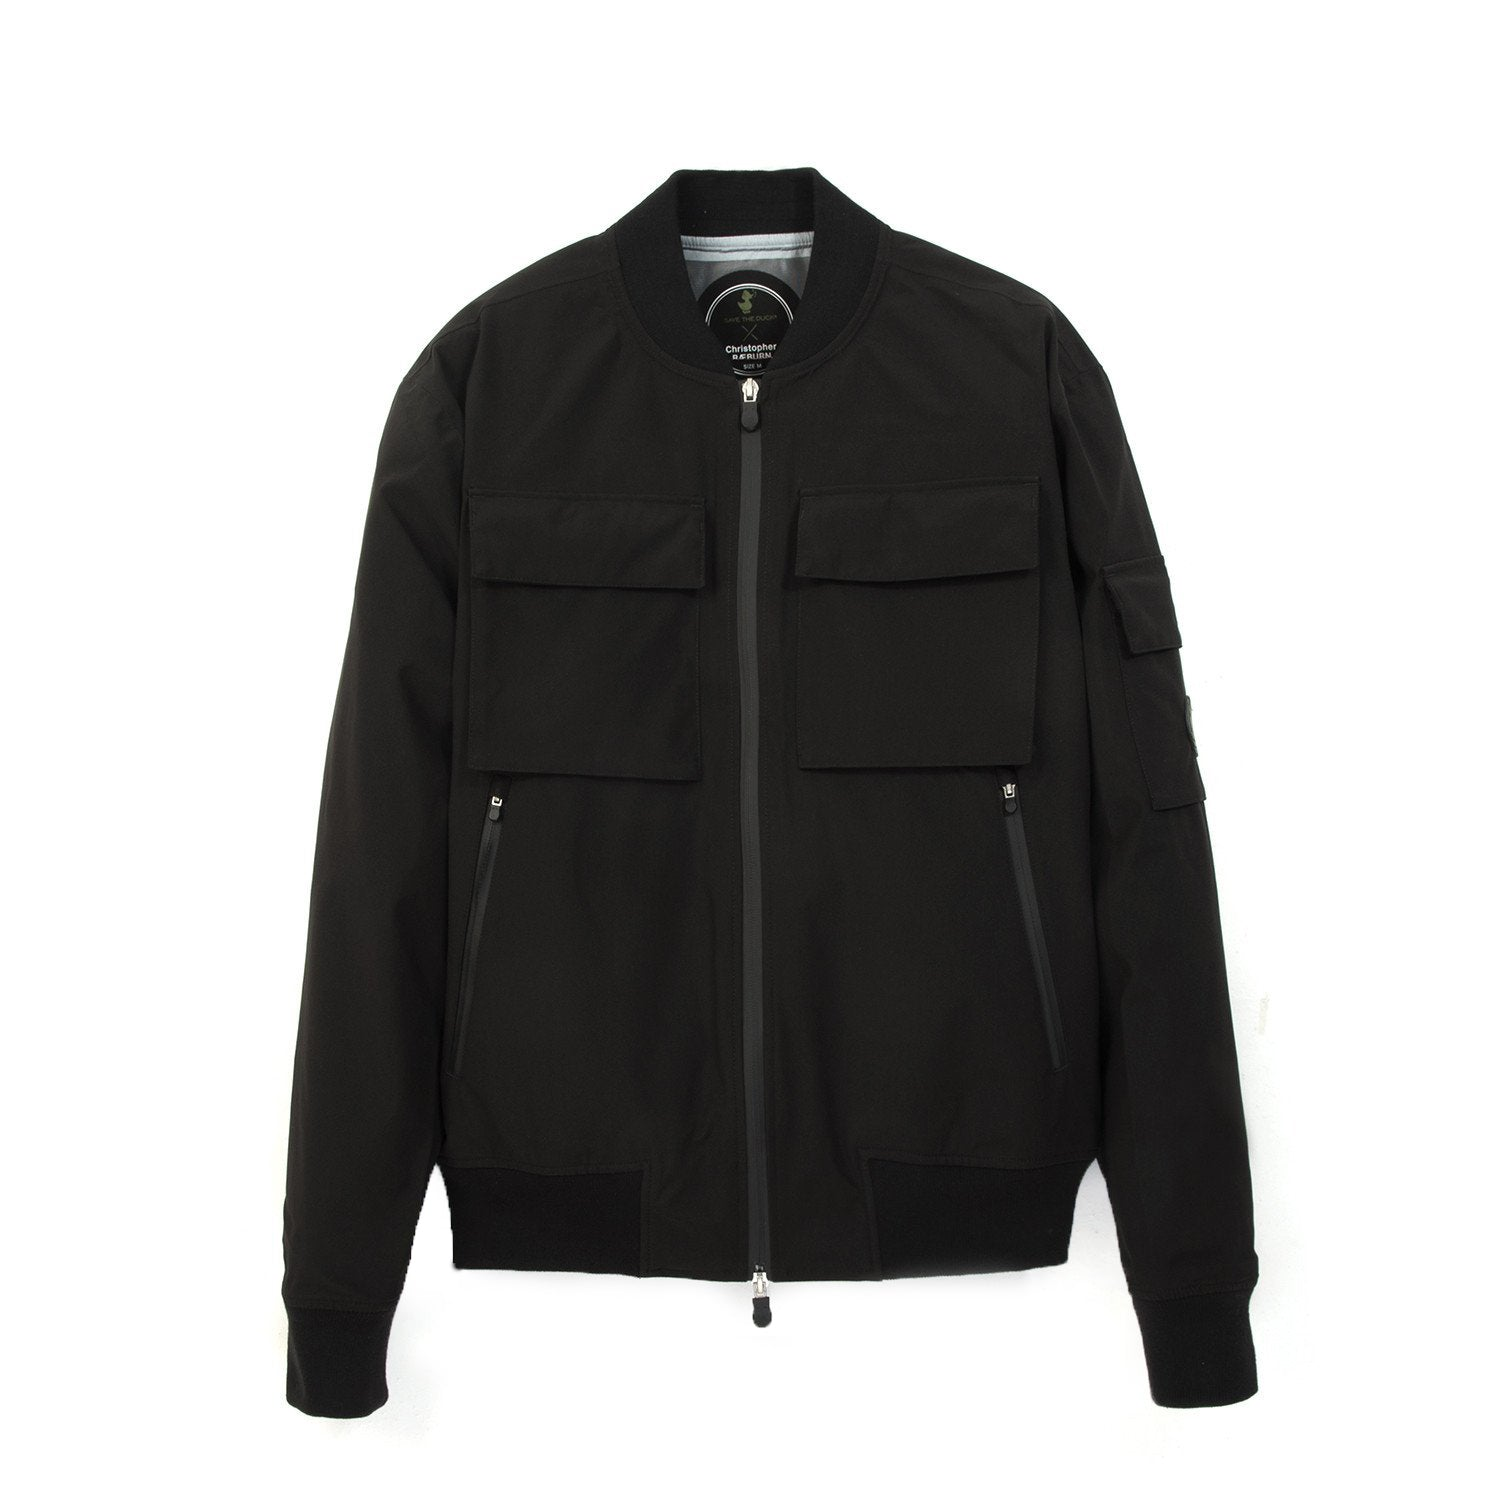 Christopher Raeburn x Save The Duck Bomber Jacket SHEL5 Black